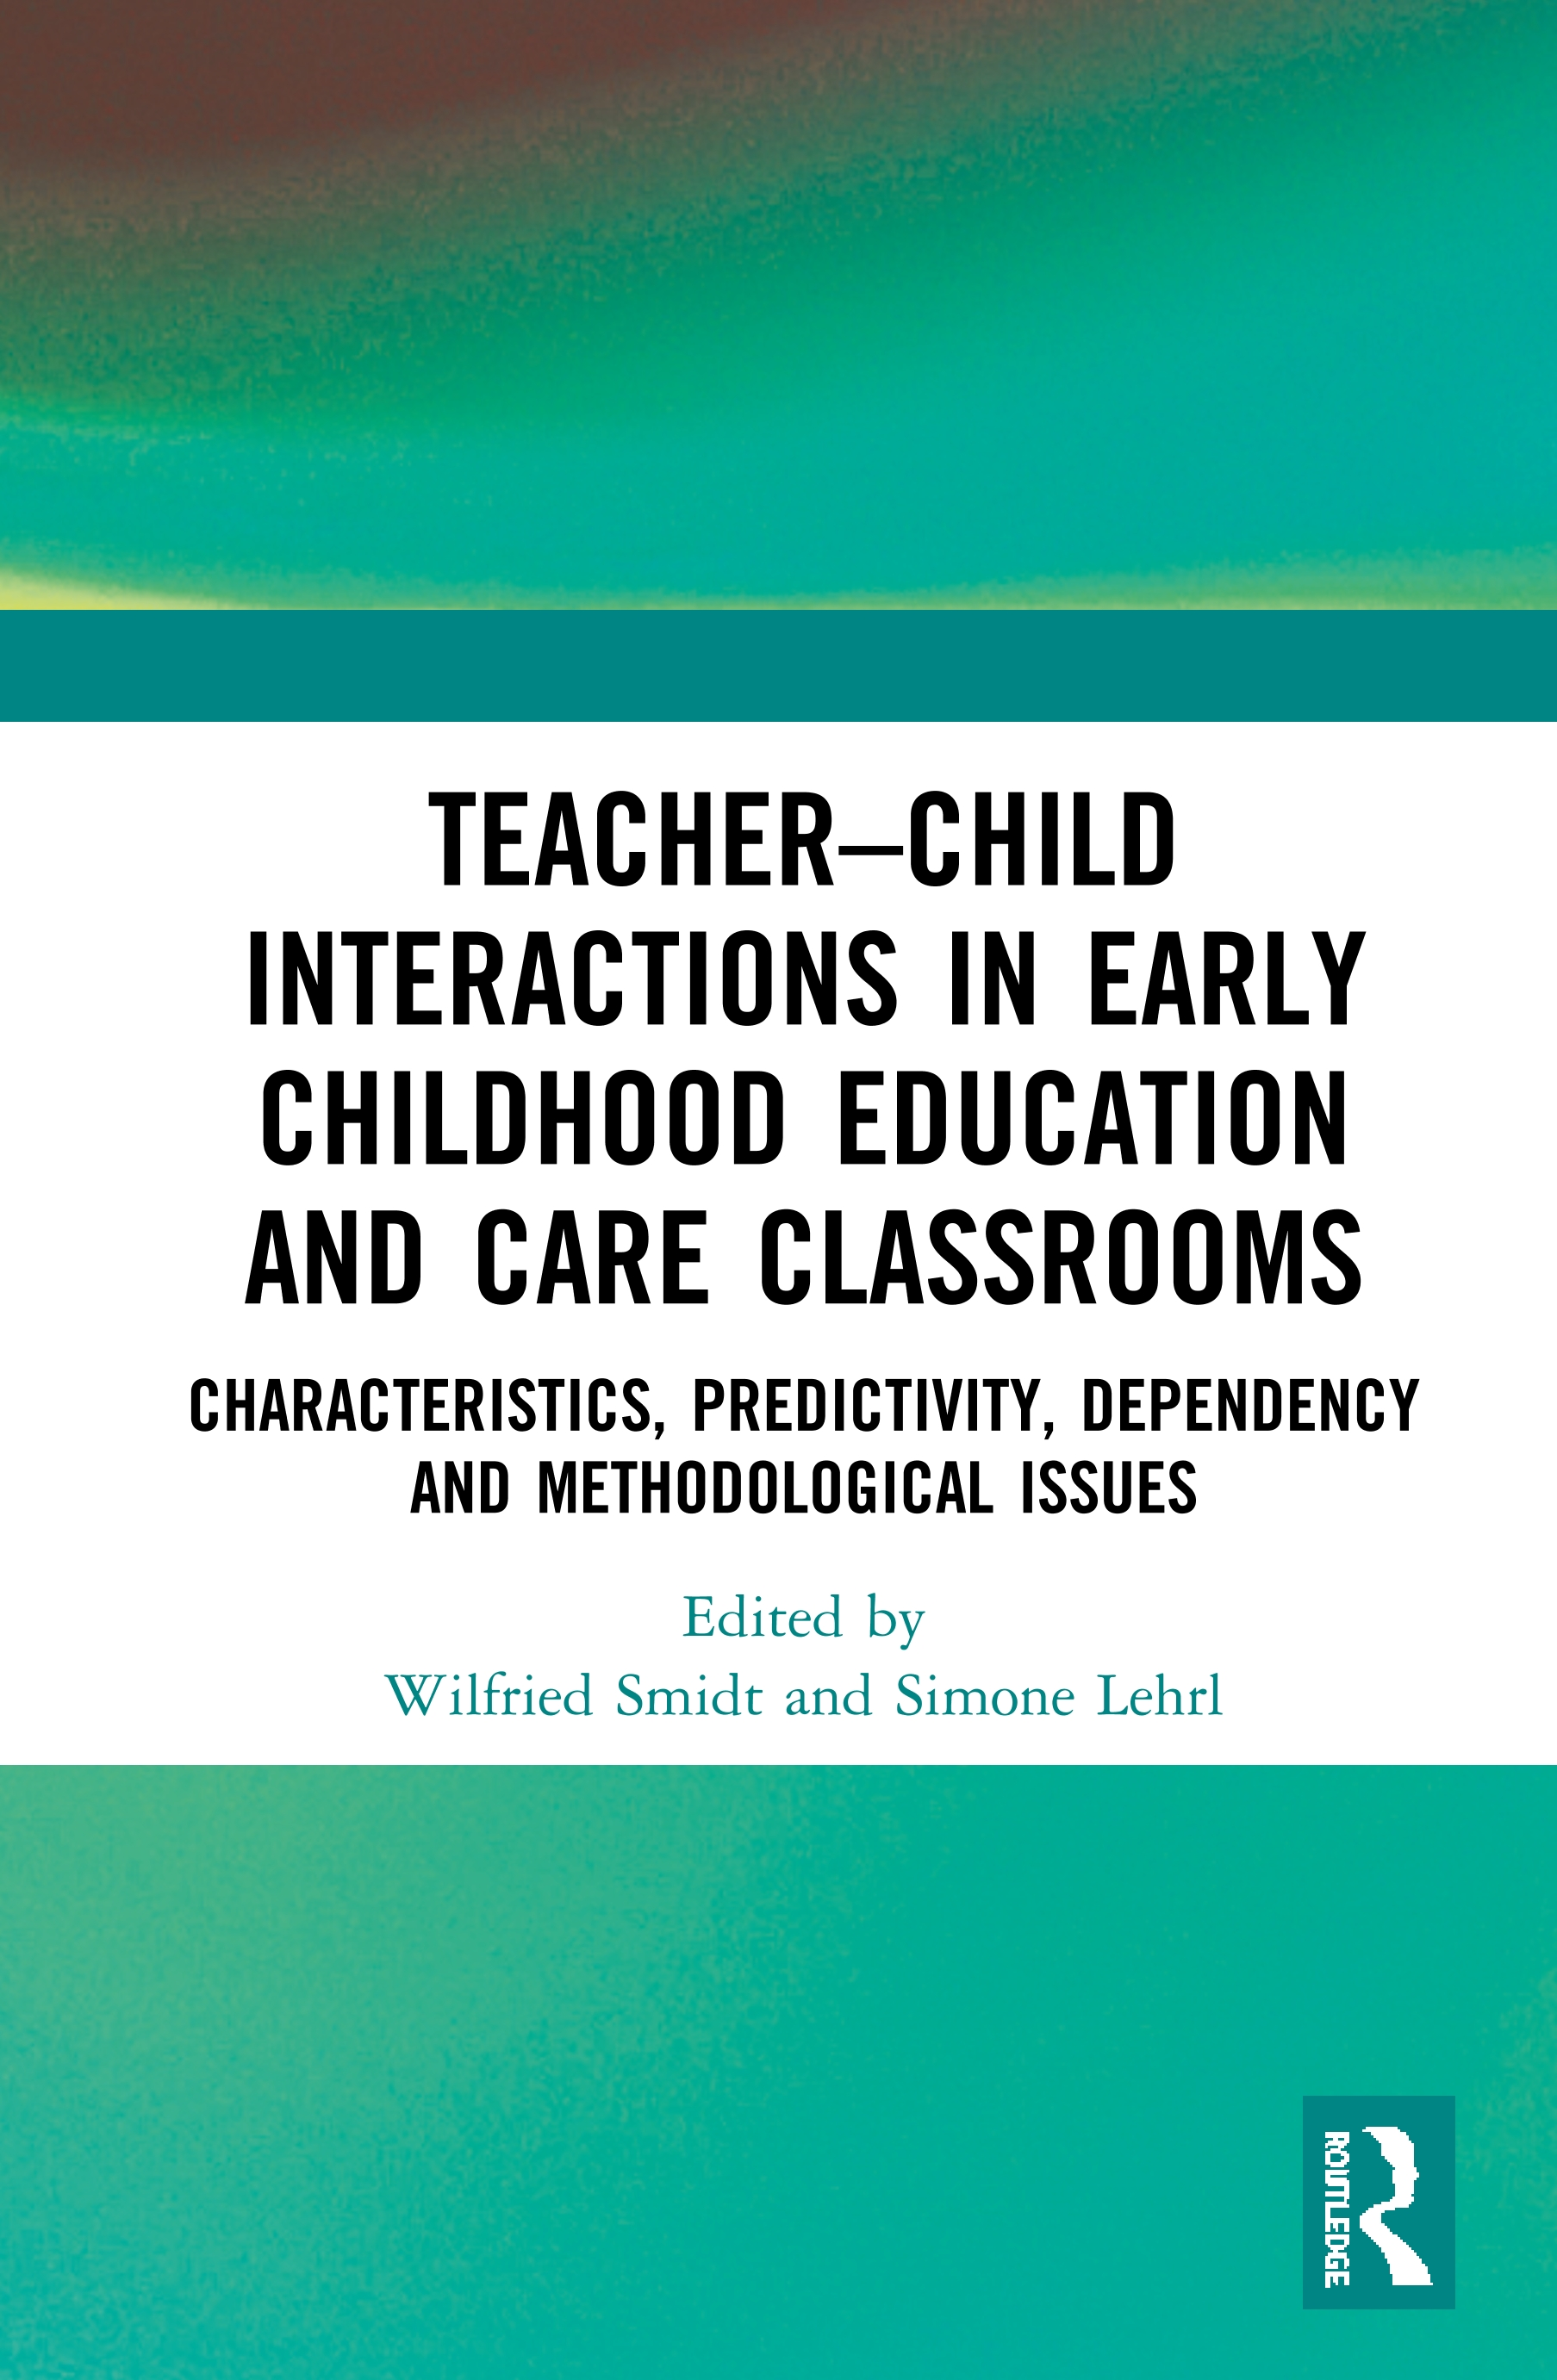 Teacher–Child Interactions in Early Childhood Education and Care Classrooms: Characteristics, Predictivity, Dependency and Methodological Issues book cover